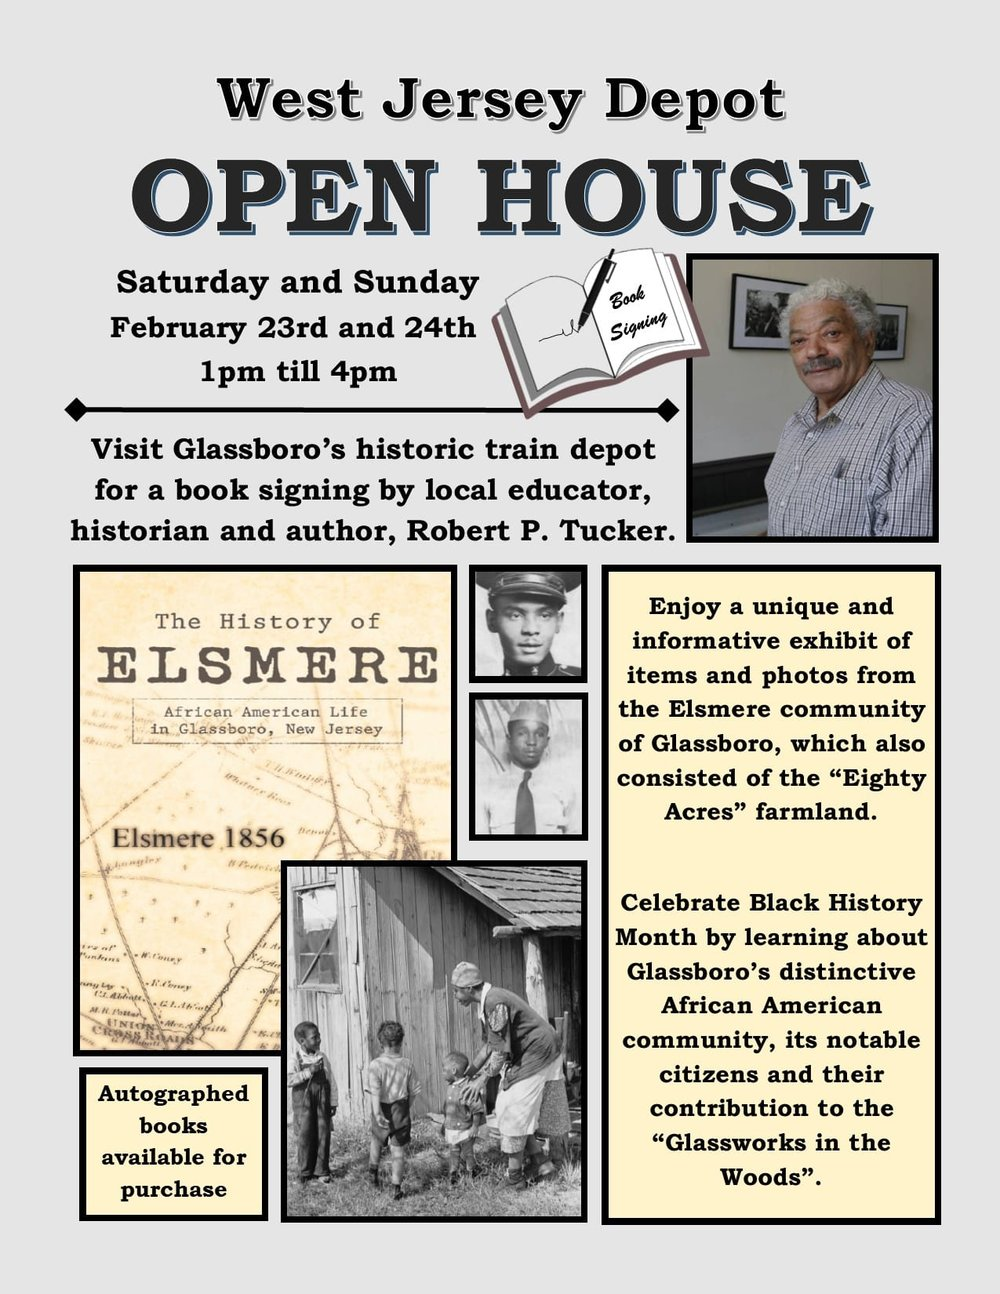 West Jersey Depot Feb Open House Book Signing Official Website